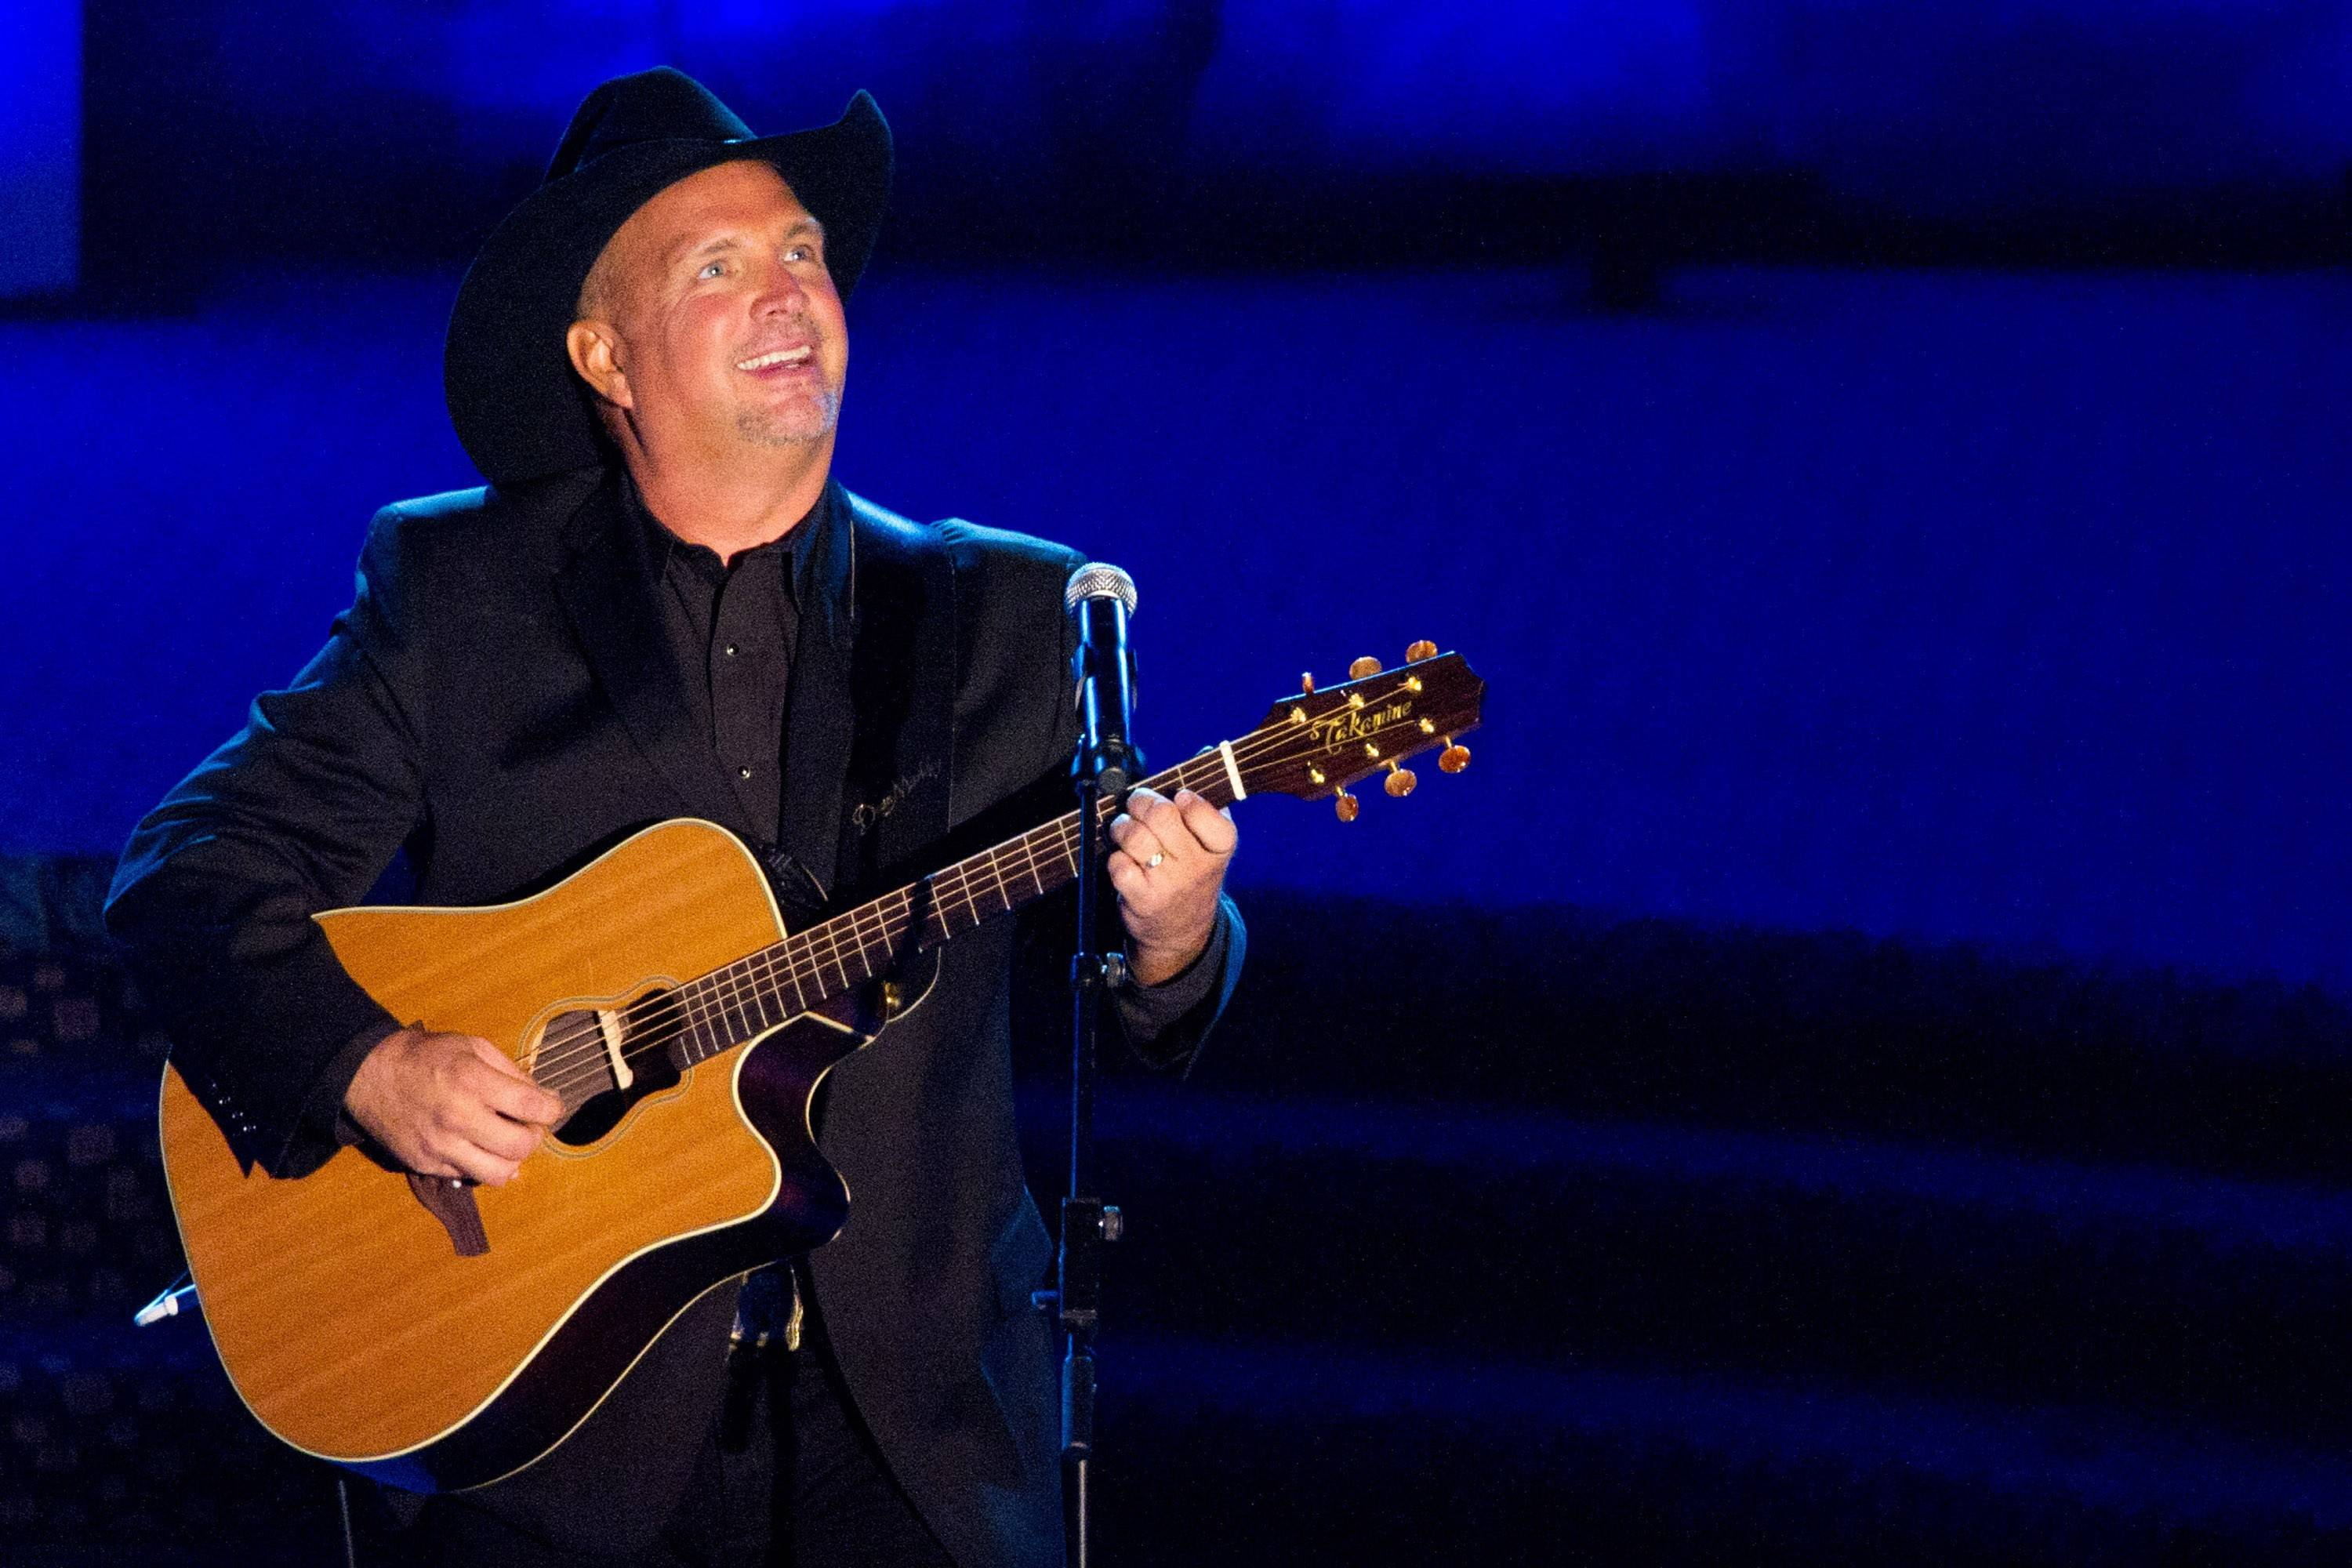 Garth Brooks launches a new world tour with Trisha Yearwood at the Allstate Arena for a series of shows in Rosemont starting Thursday, Sept. 4.